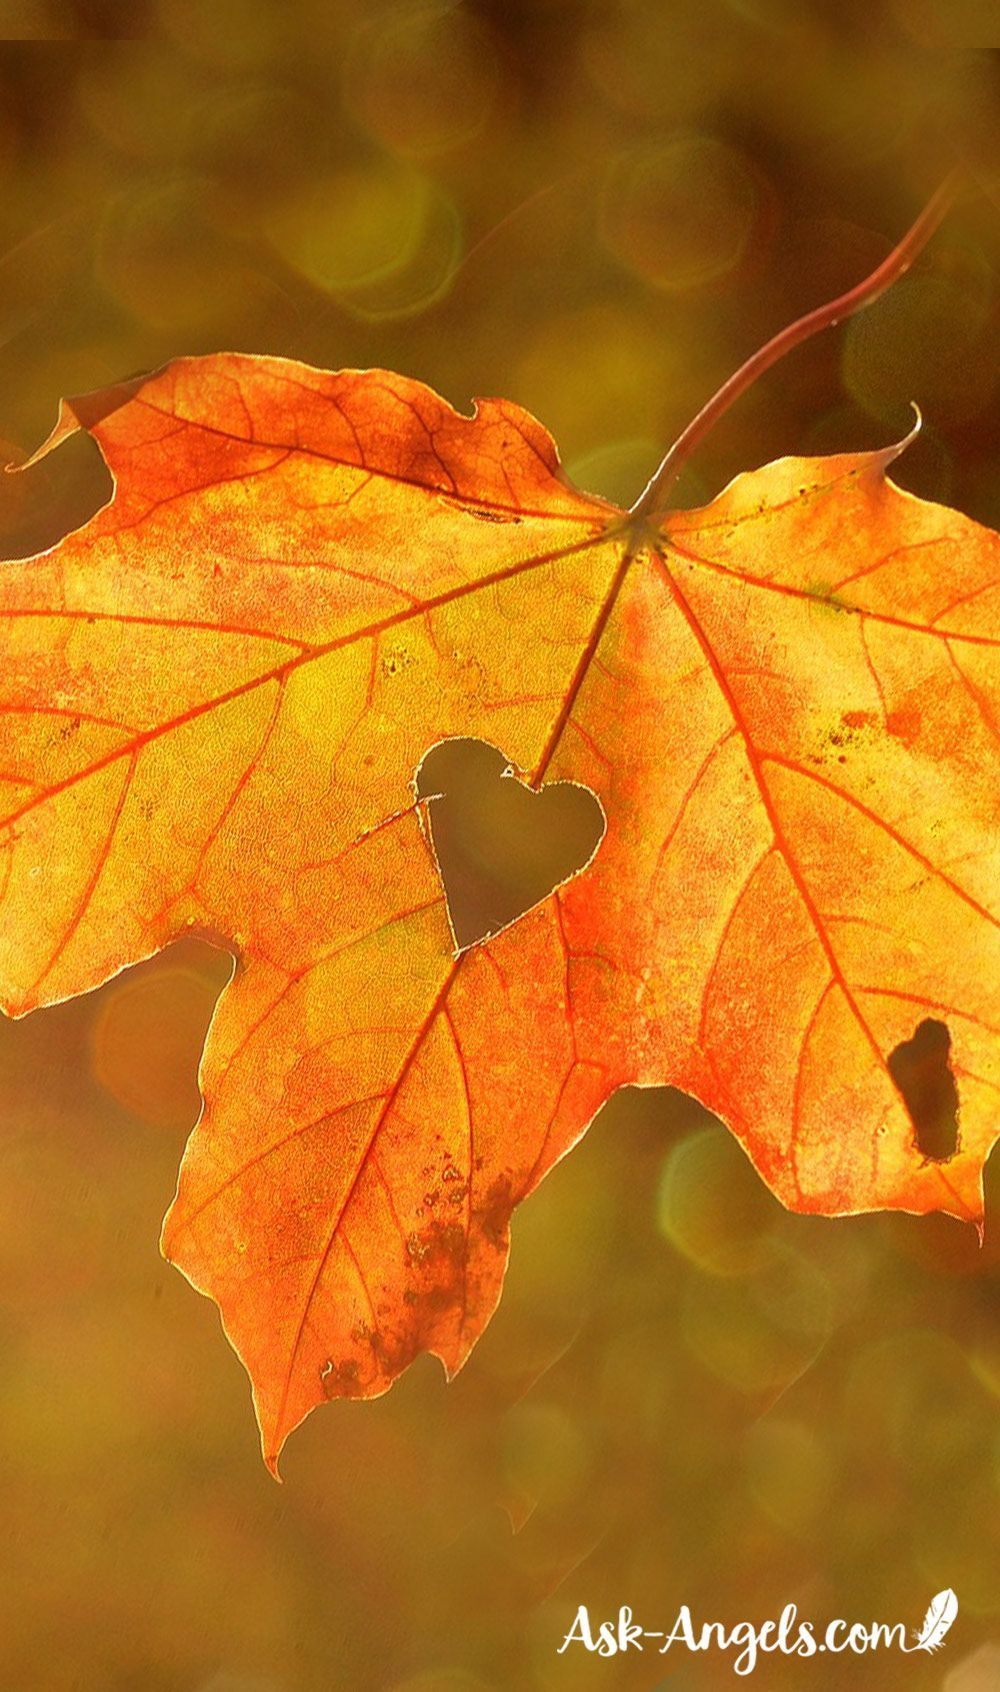 A Simple Autumnal Equinox Ritual - Ask-Angels.com #autumnalequinox Autumnal Equinox Ritual #autumnalequinox